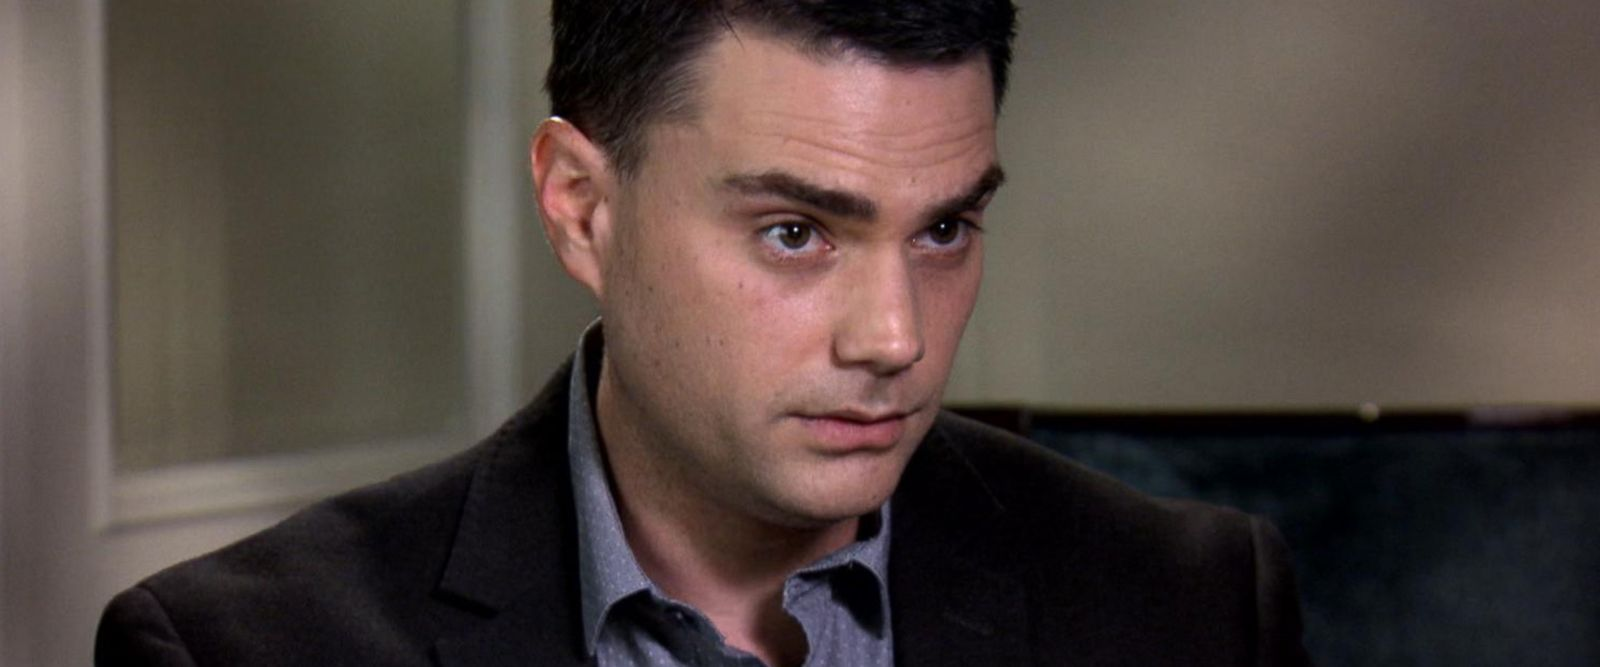 VIDEO: Outspoken conservative Ben Shapiro says political correctness breeds insanity